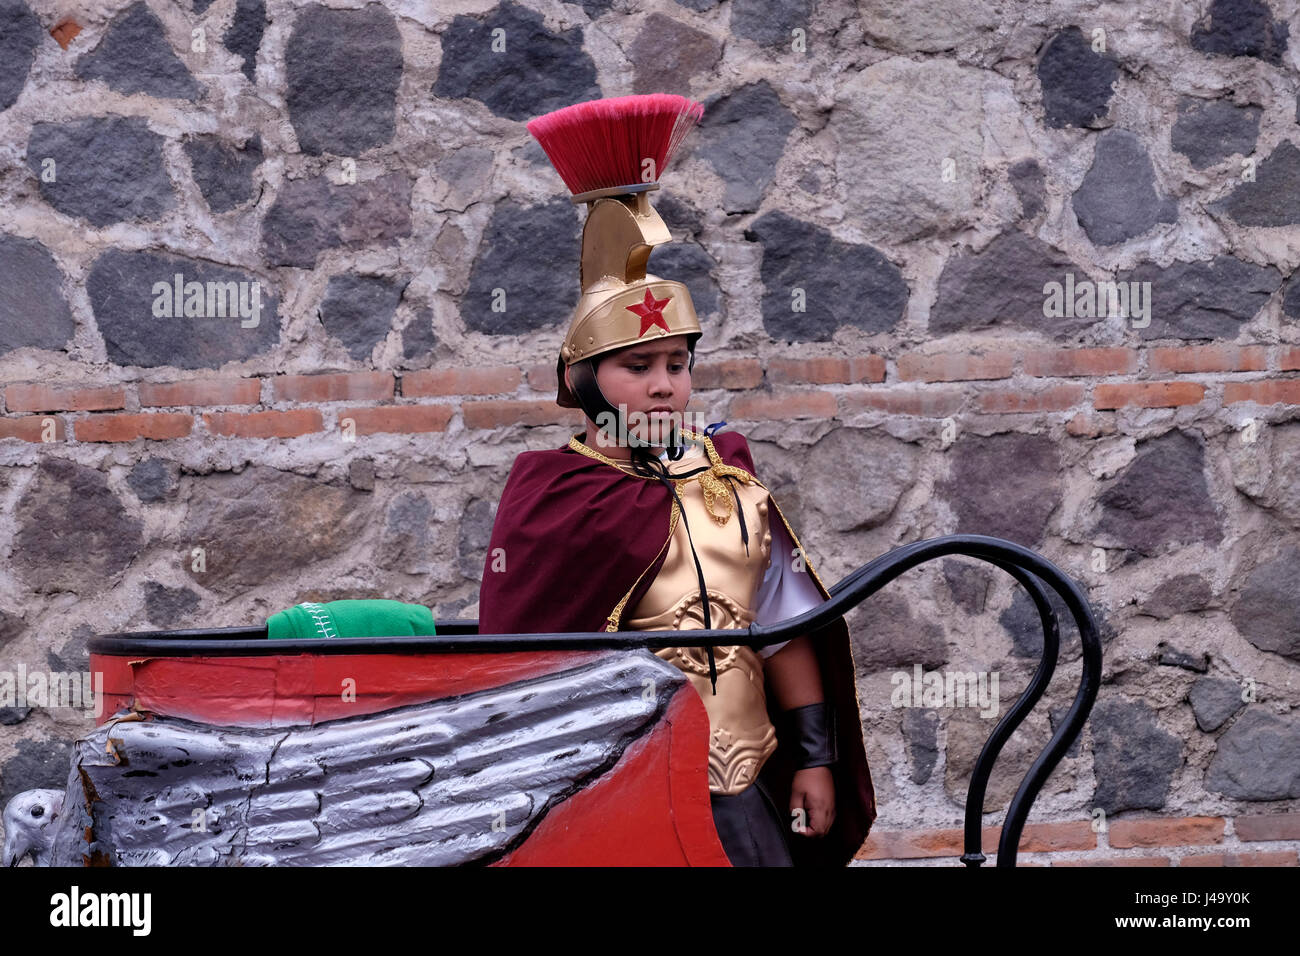 A young boy dresses as a Roman warrior during Semana Santa or Holy week celebration in the city of Antigua Guatemala - Stock Image